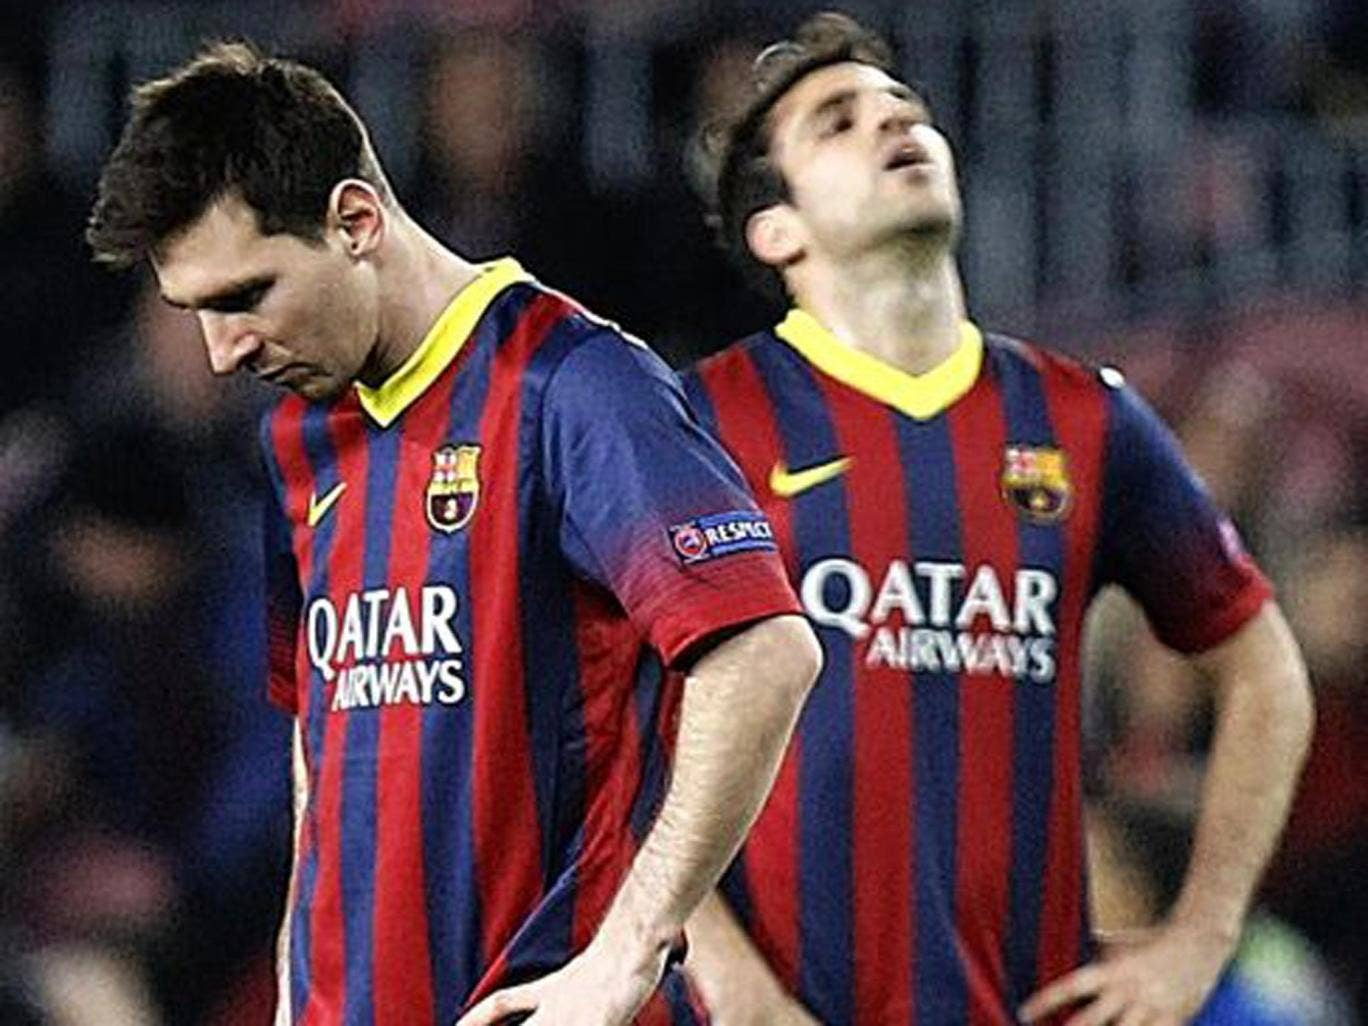 Lionel Messi and Cesc Fabregas hang their heads during Barcelona's draw against Atletico Madrid